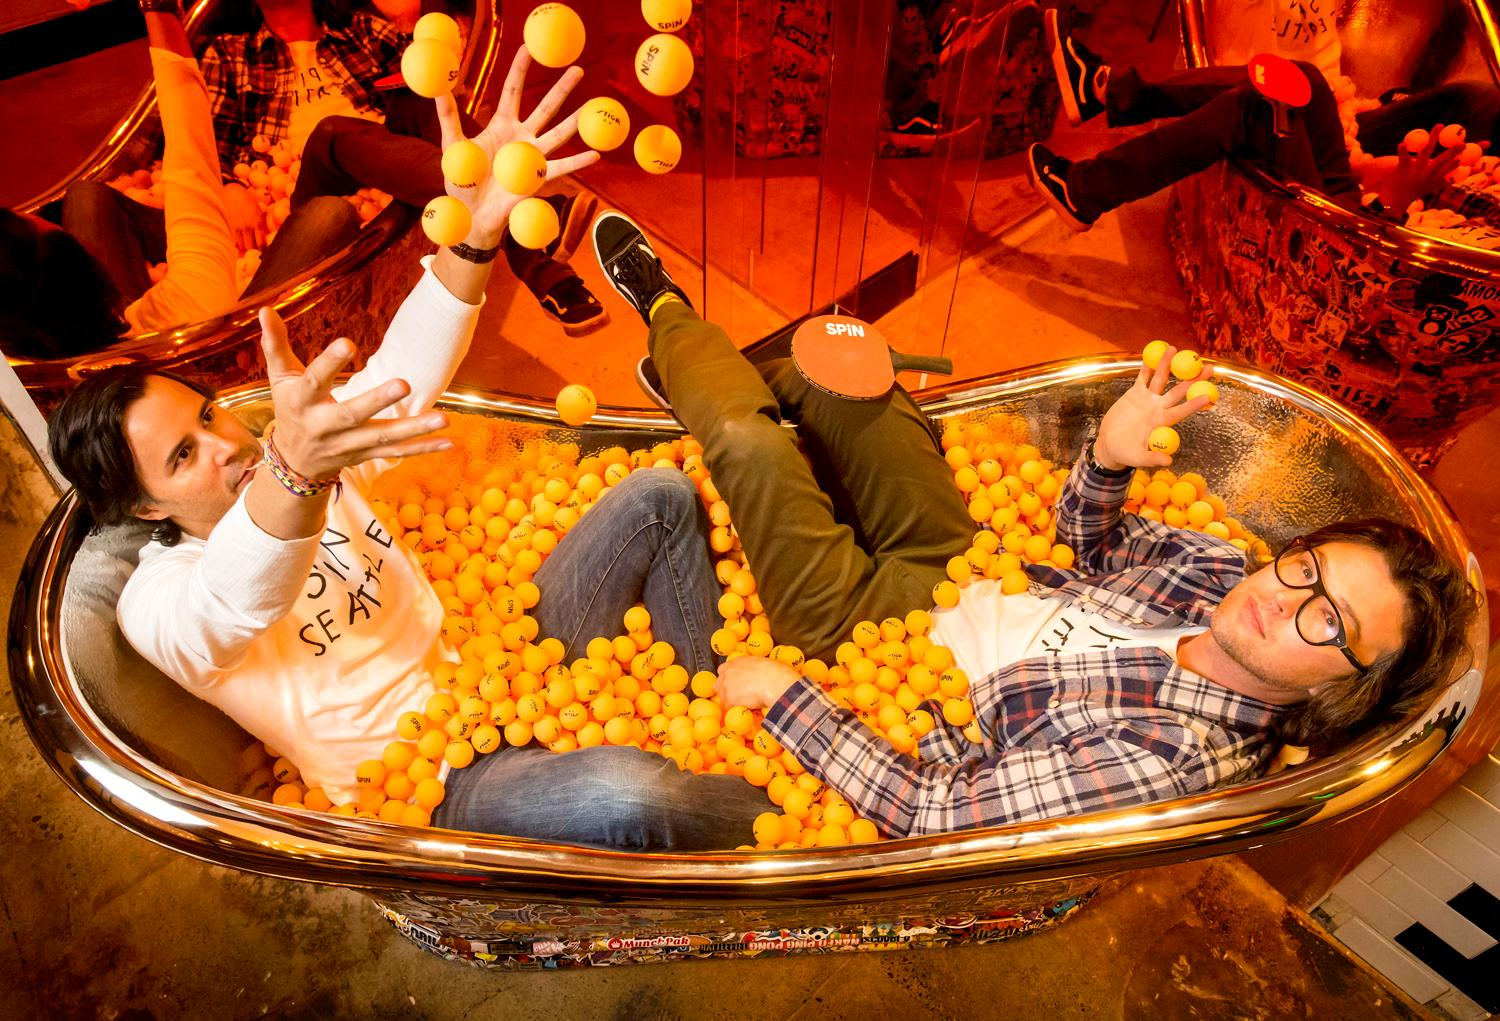 D.C.'s ping pong tub wasn't ready when we visited Spin, so we had to steal this pic from our friends at Seattle Refined, but this only builds our intrigue! When asked why a tub filled with ping pong balls, we were simply told, why not??{ }Image: Sy Bean / Seattle Refined)